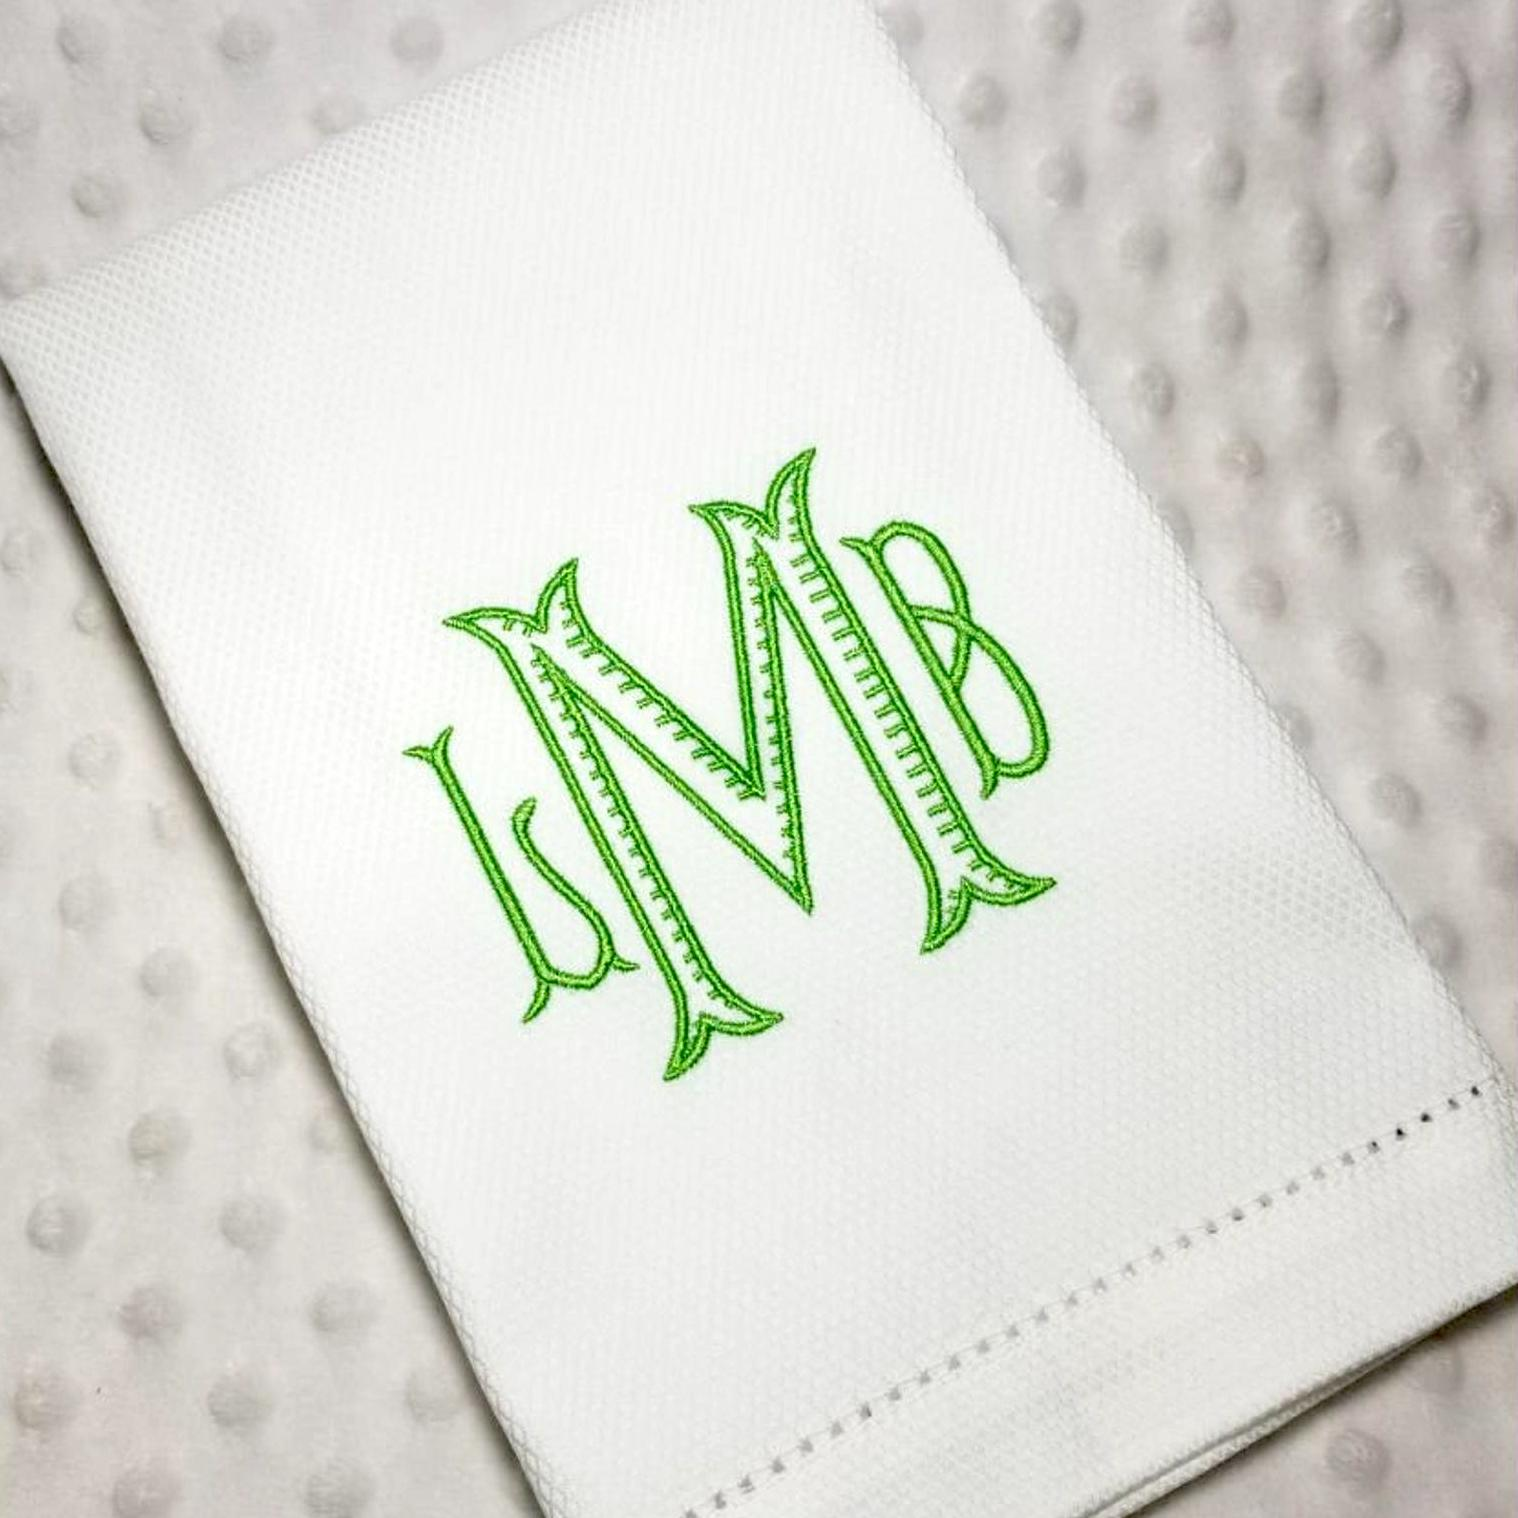 white hand towel with initials monogramed in green font